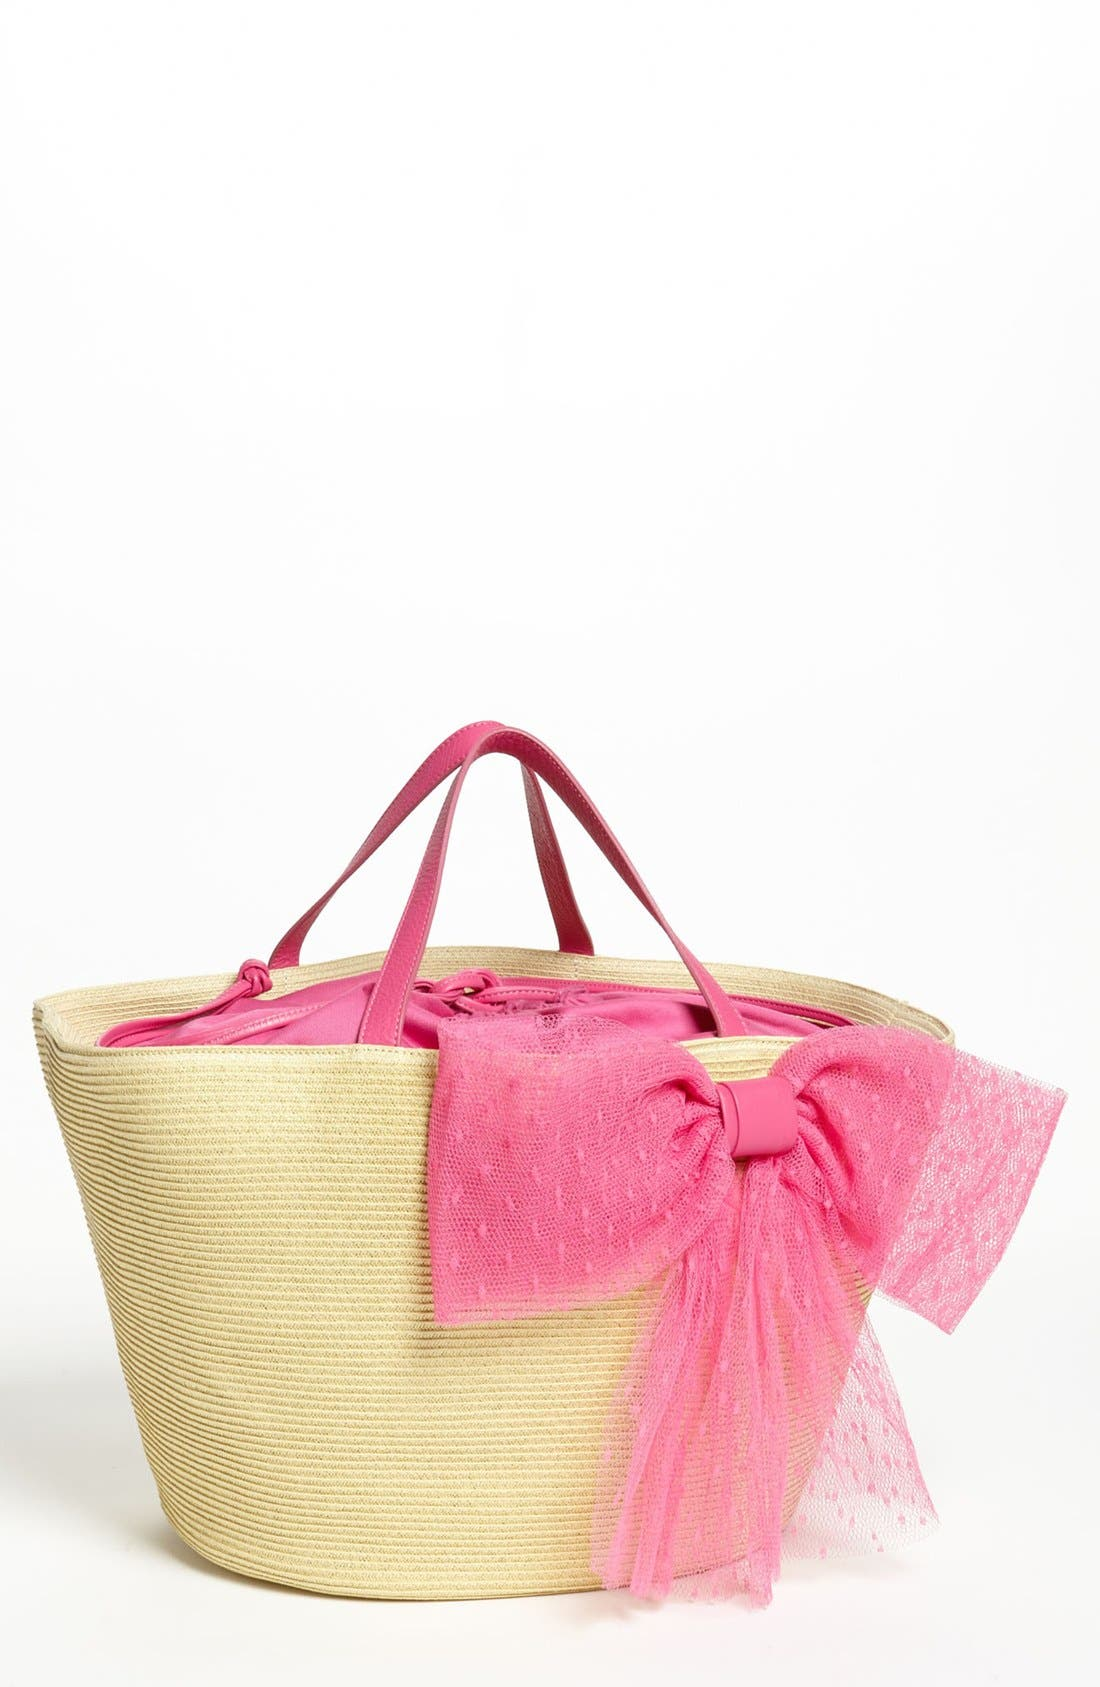 Main Image - RED Valentino 'Bow' Straw Tote